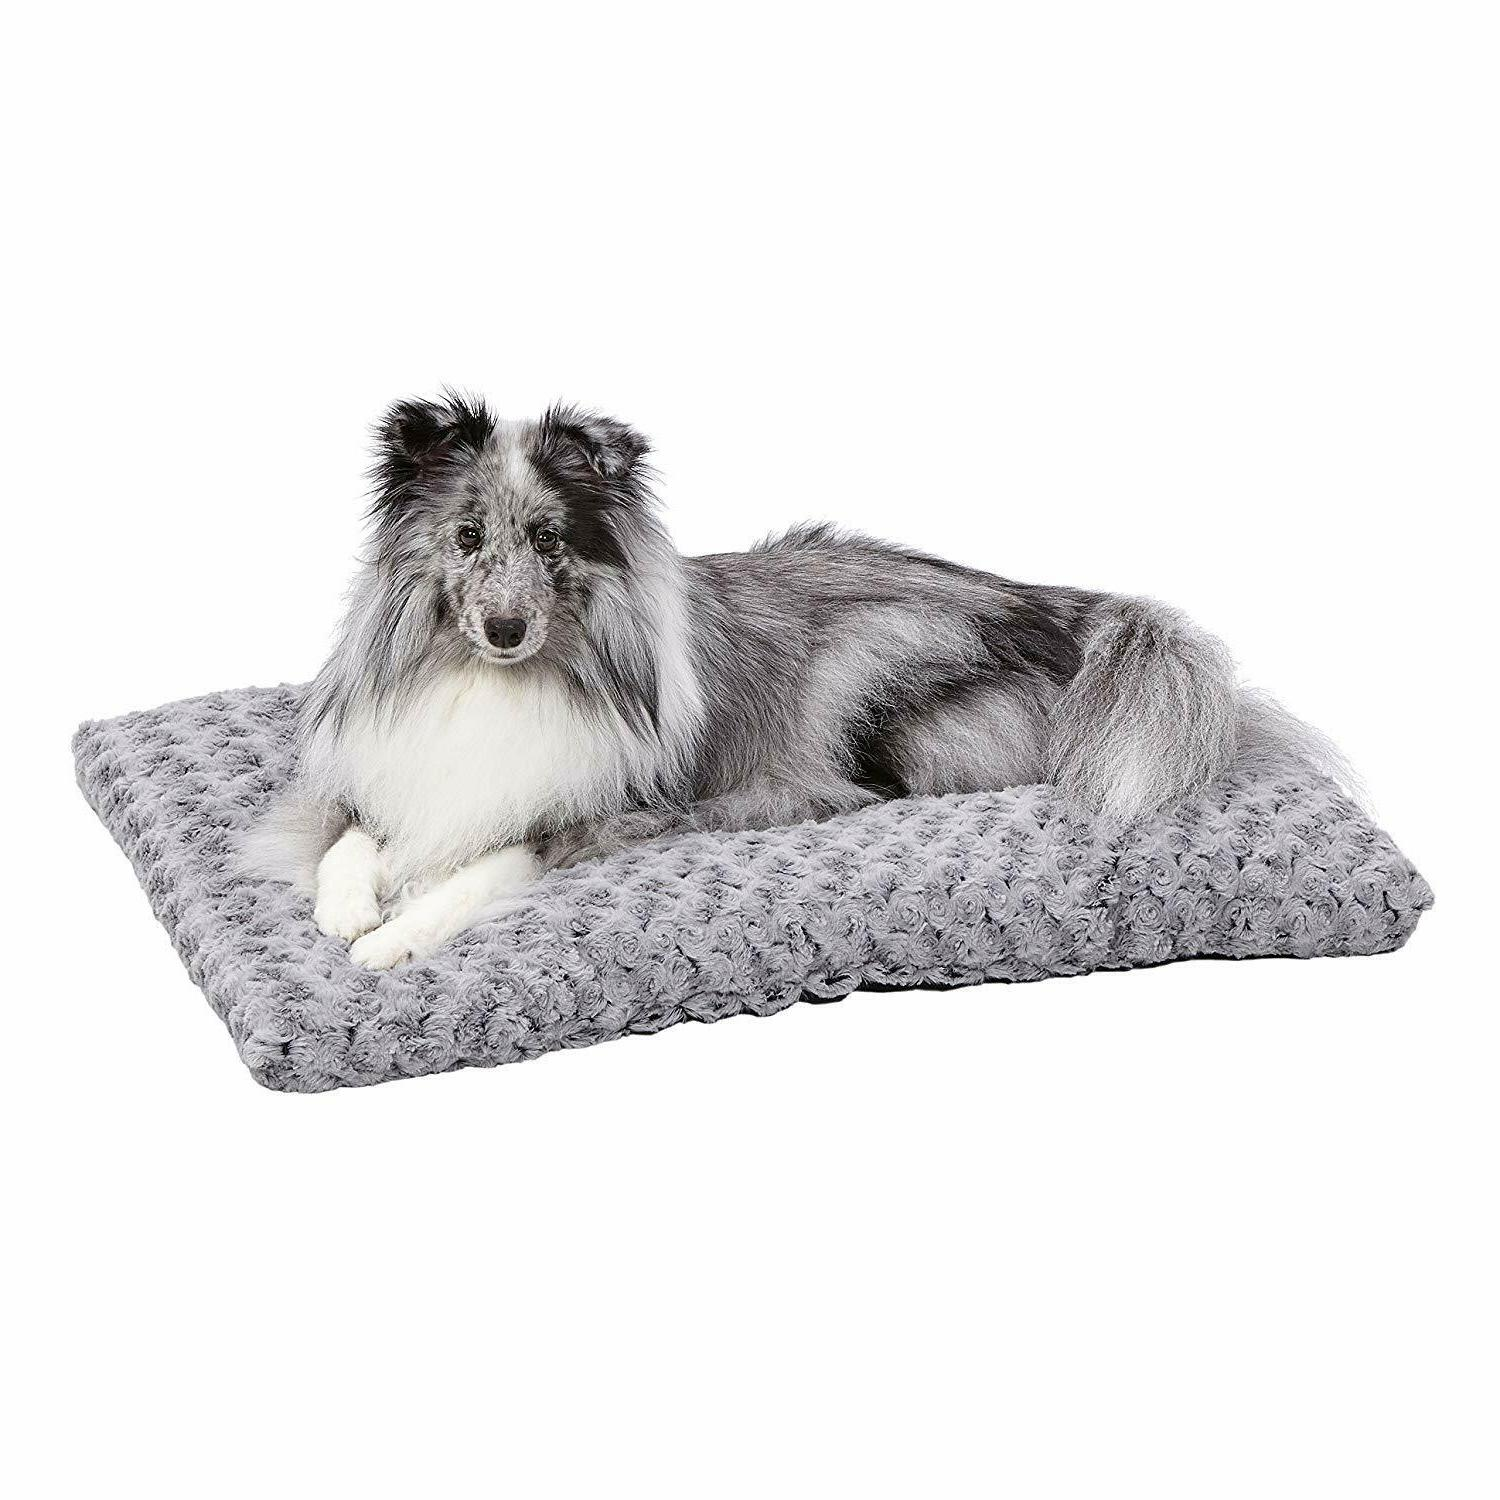 Deluxe Pet Beds | Super Plush Dog & Cat Beds Ideal for Dog C